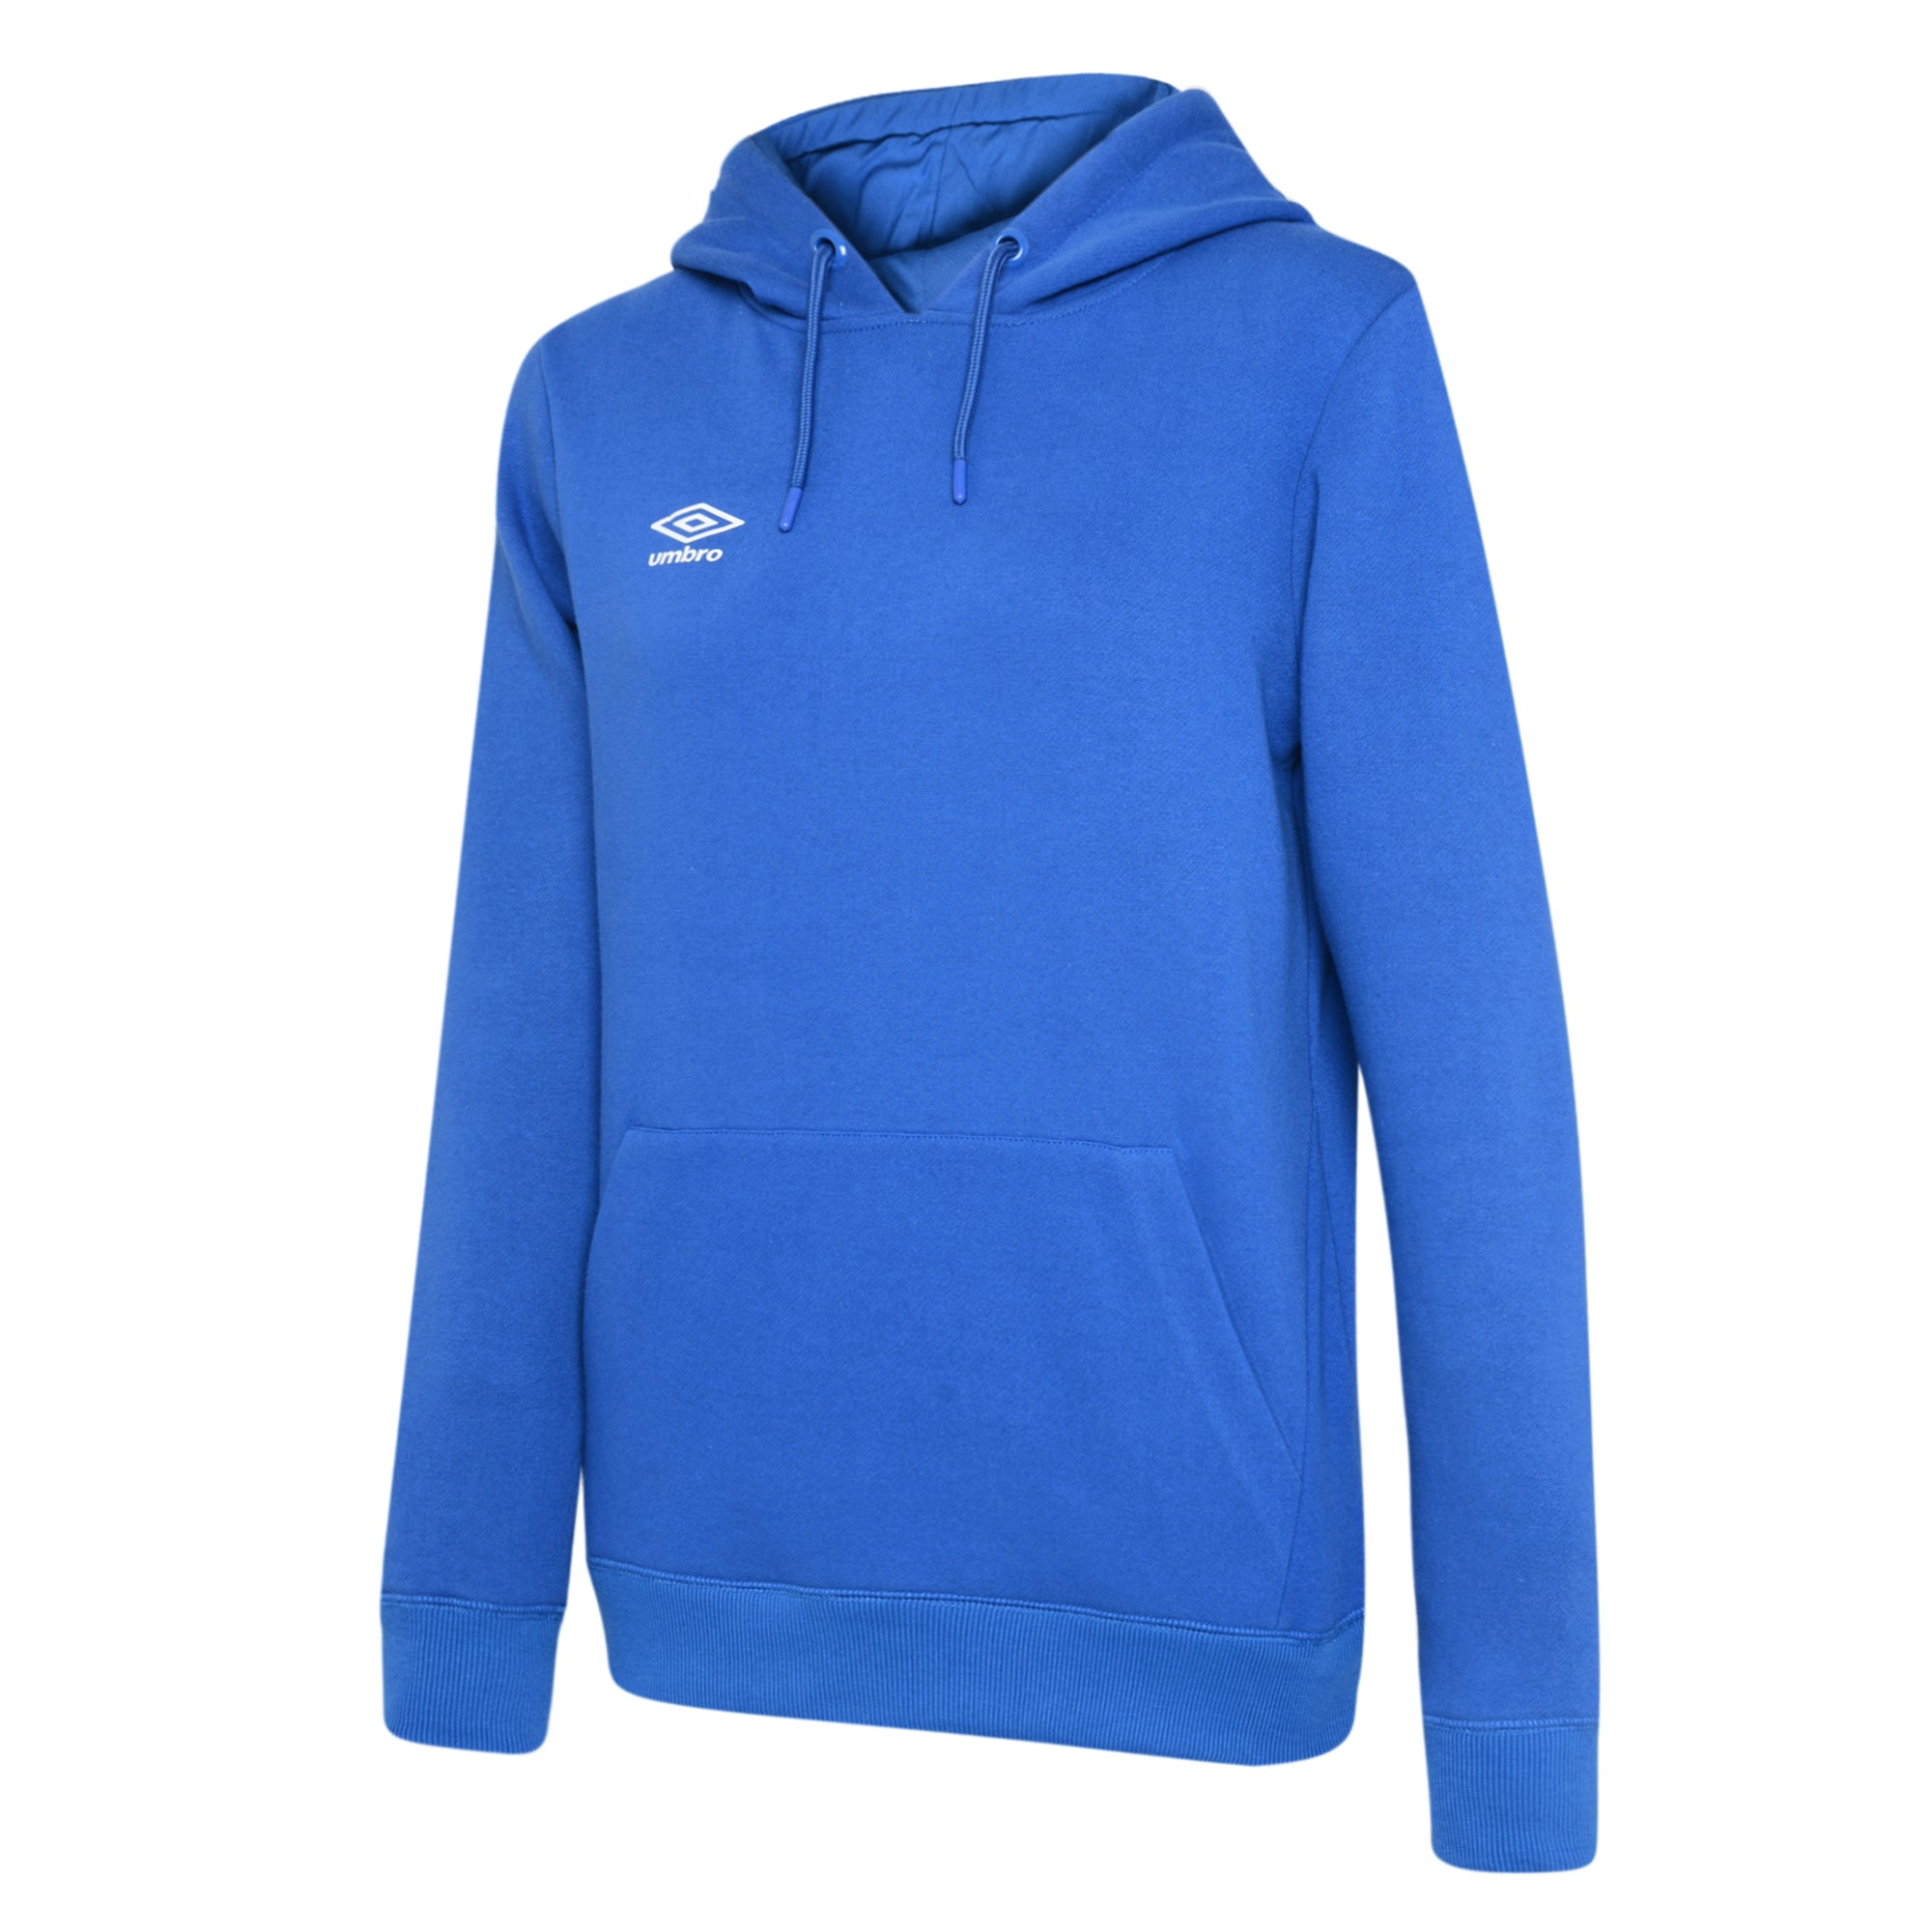 Umbro Club Leisure Women's Hoody - TW Royal/White